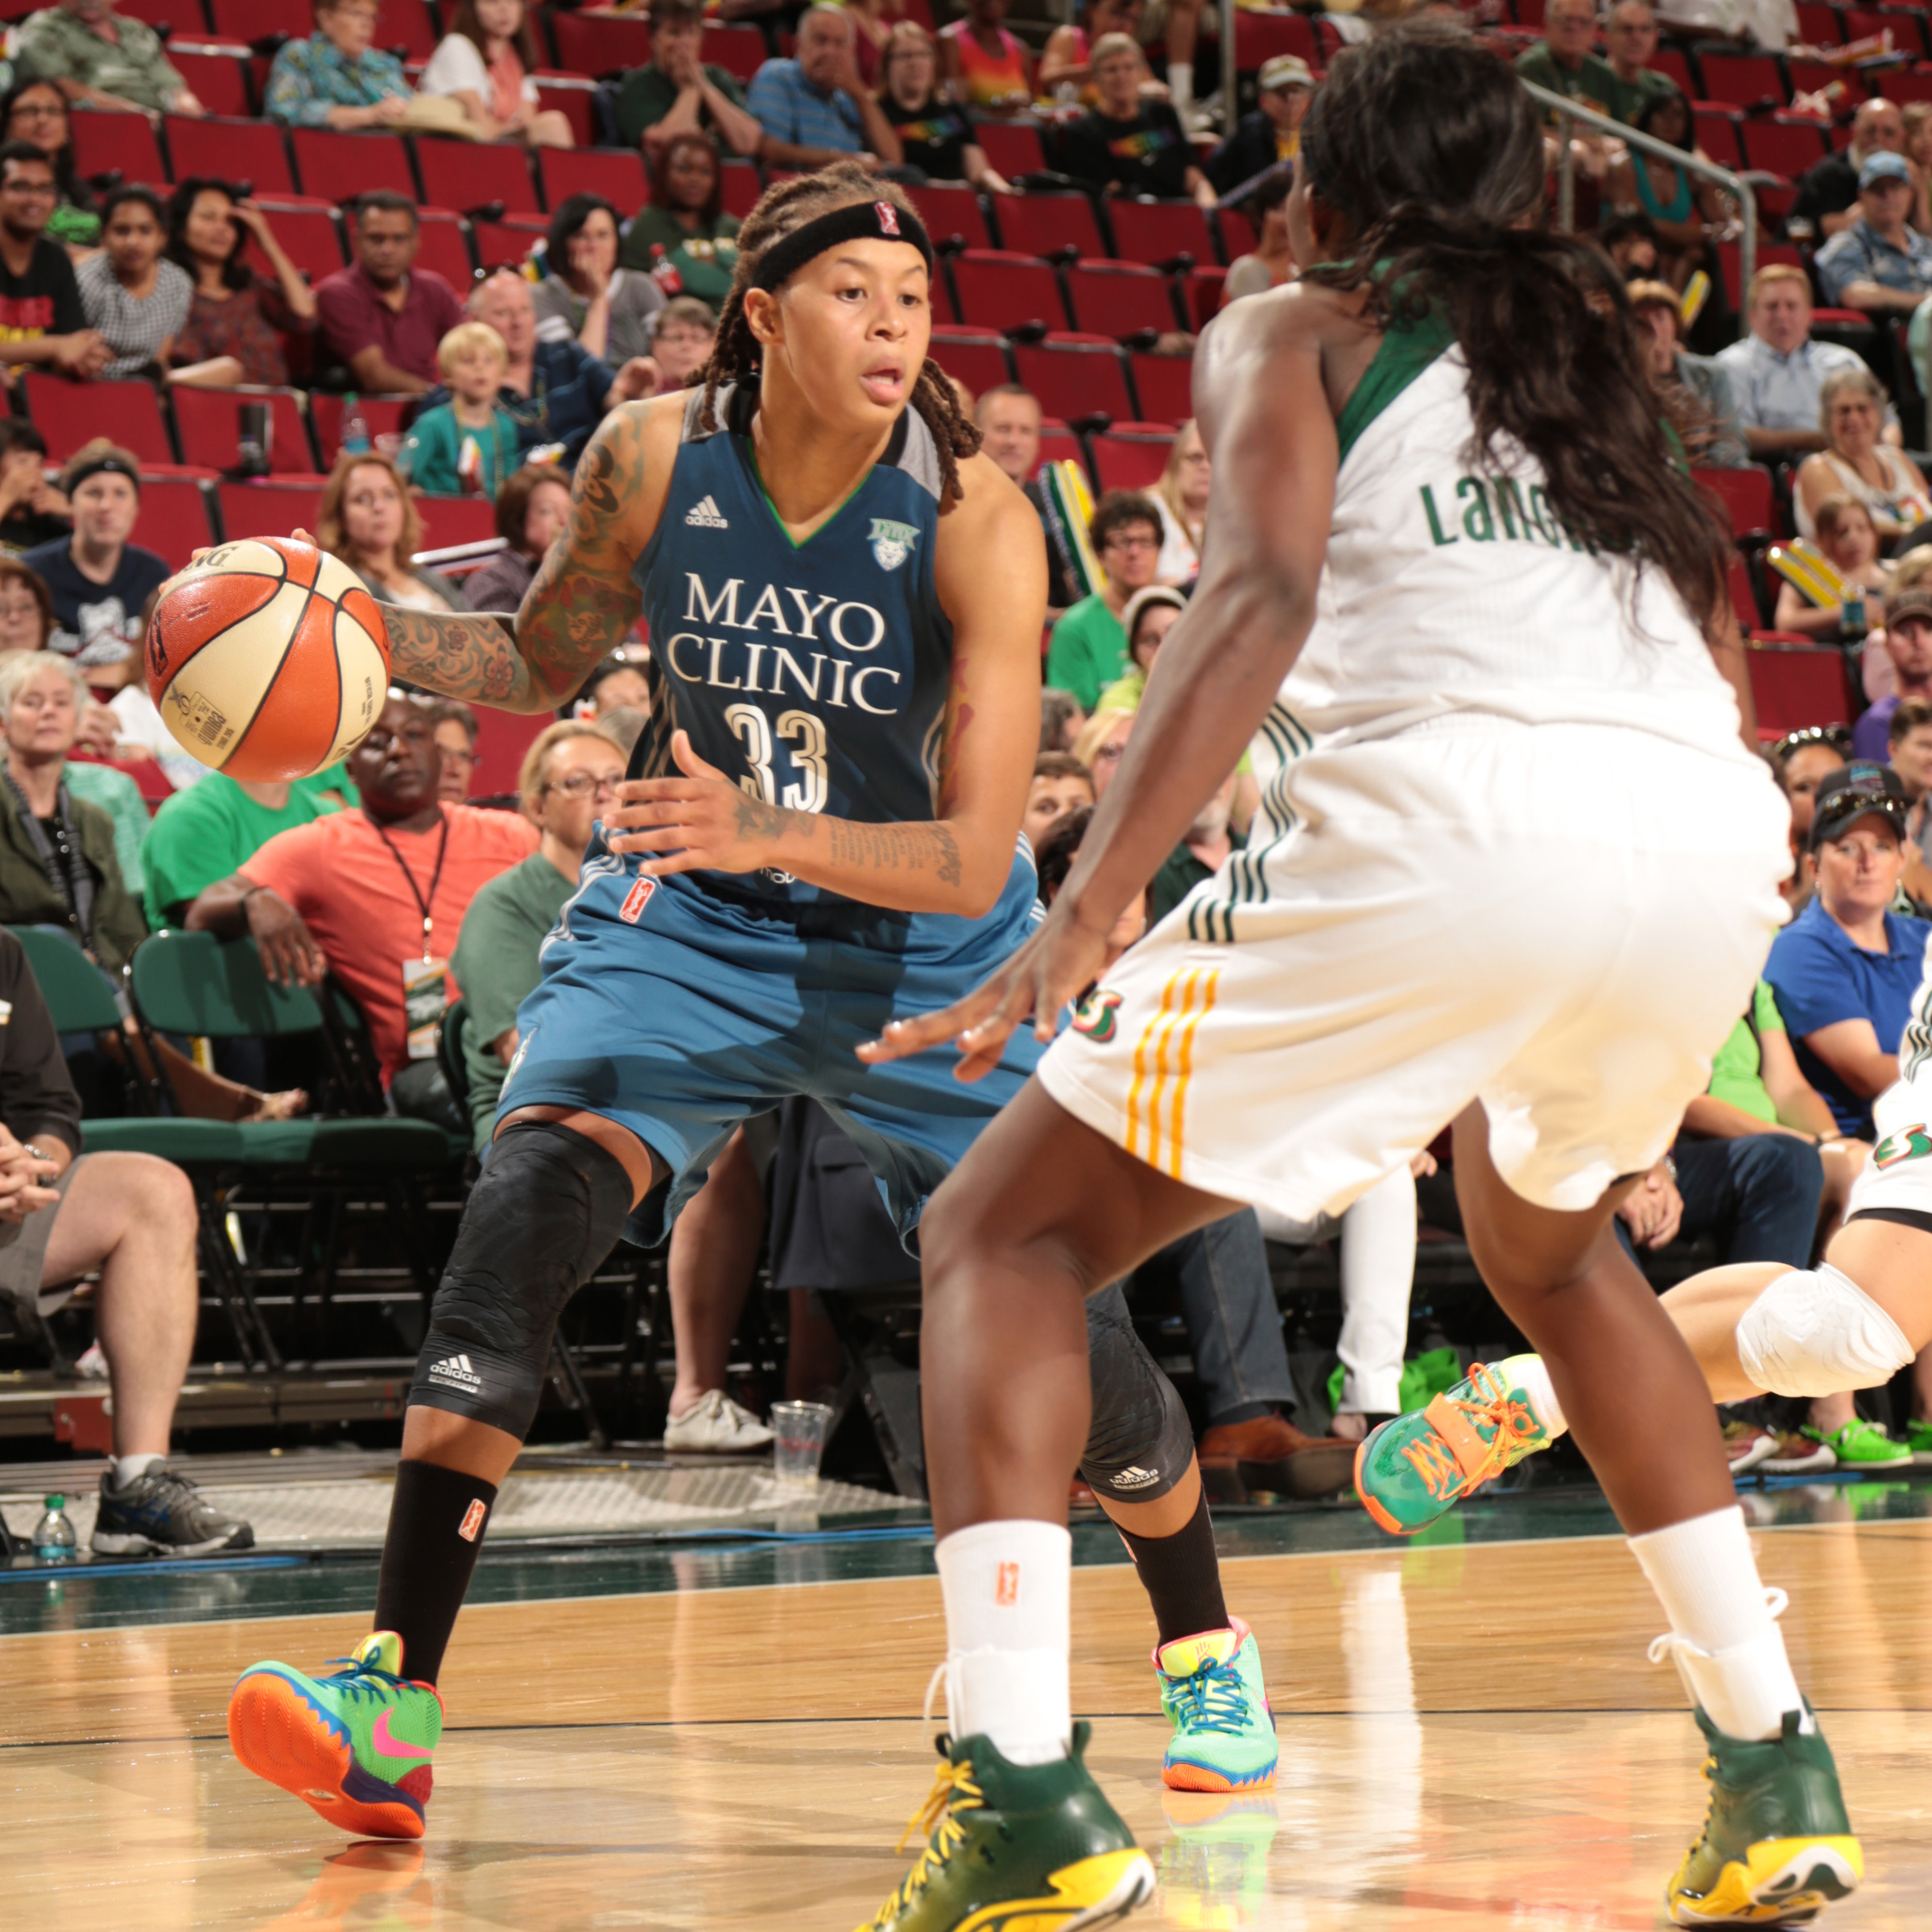 Lynx guard Seimone Augustus fueled Minnesota's furious comeback, pouring in 24 points to go with four rebounds and three assists.